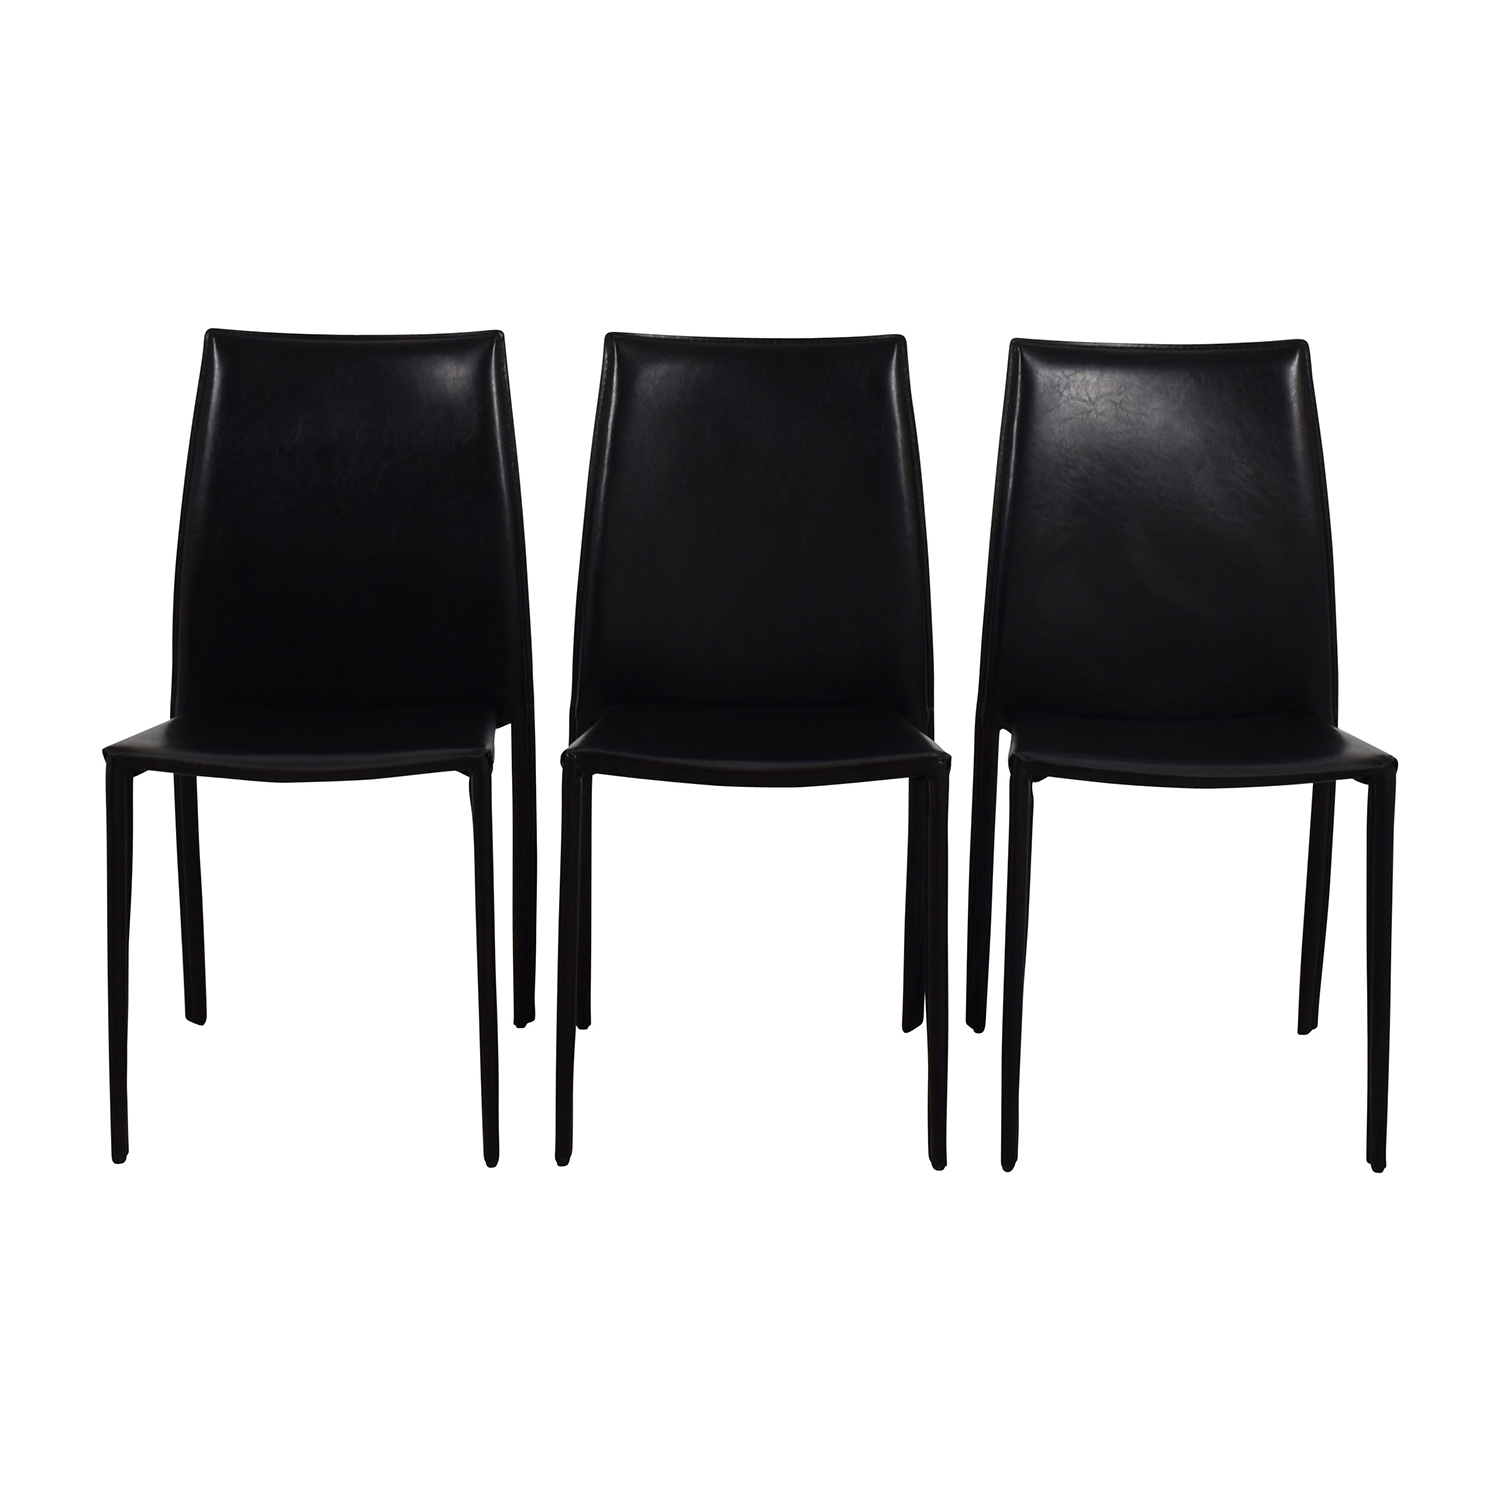 InMod InMod Manta Black Leather Stacking Chairs for sale